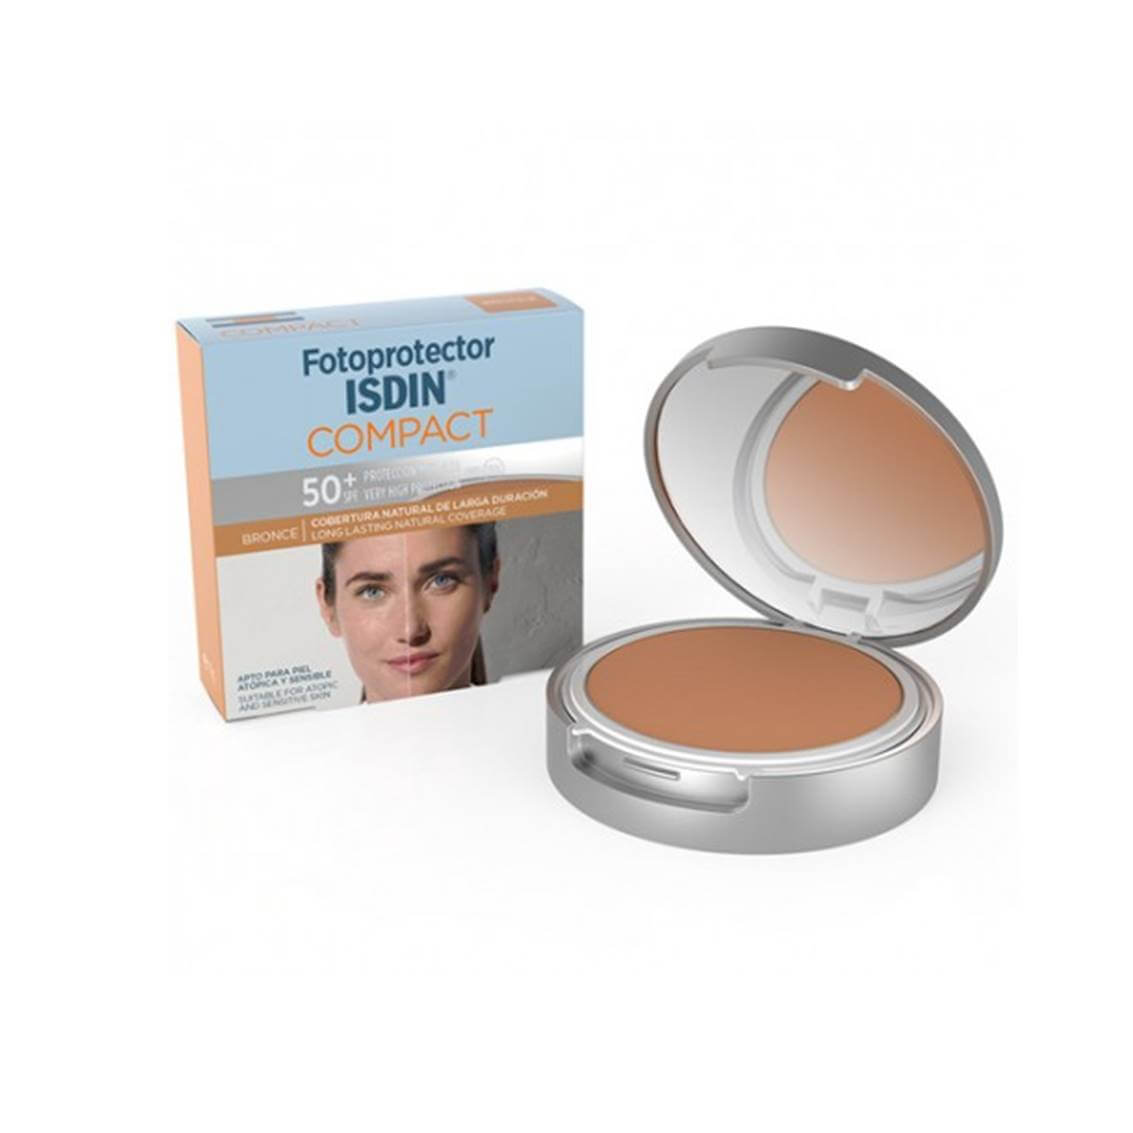 Fotoprotector isdin 50+ maq compacto bronce 10 g